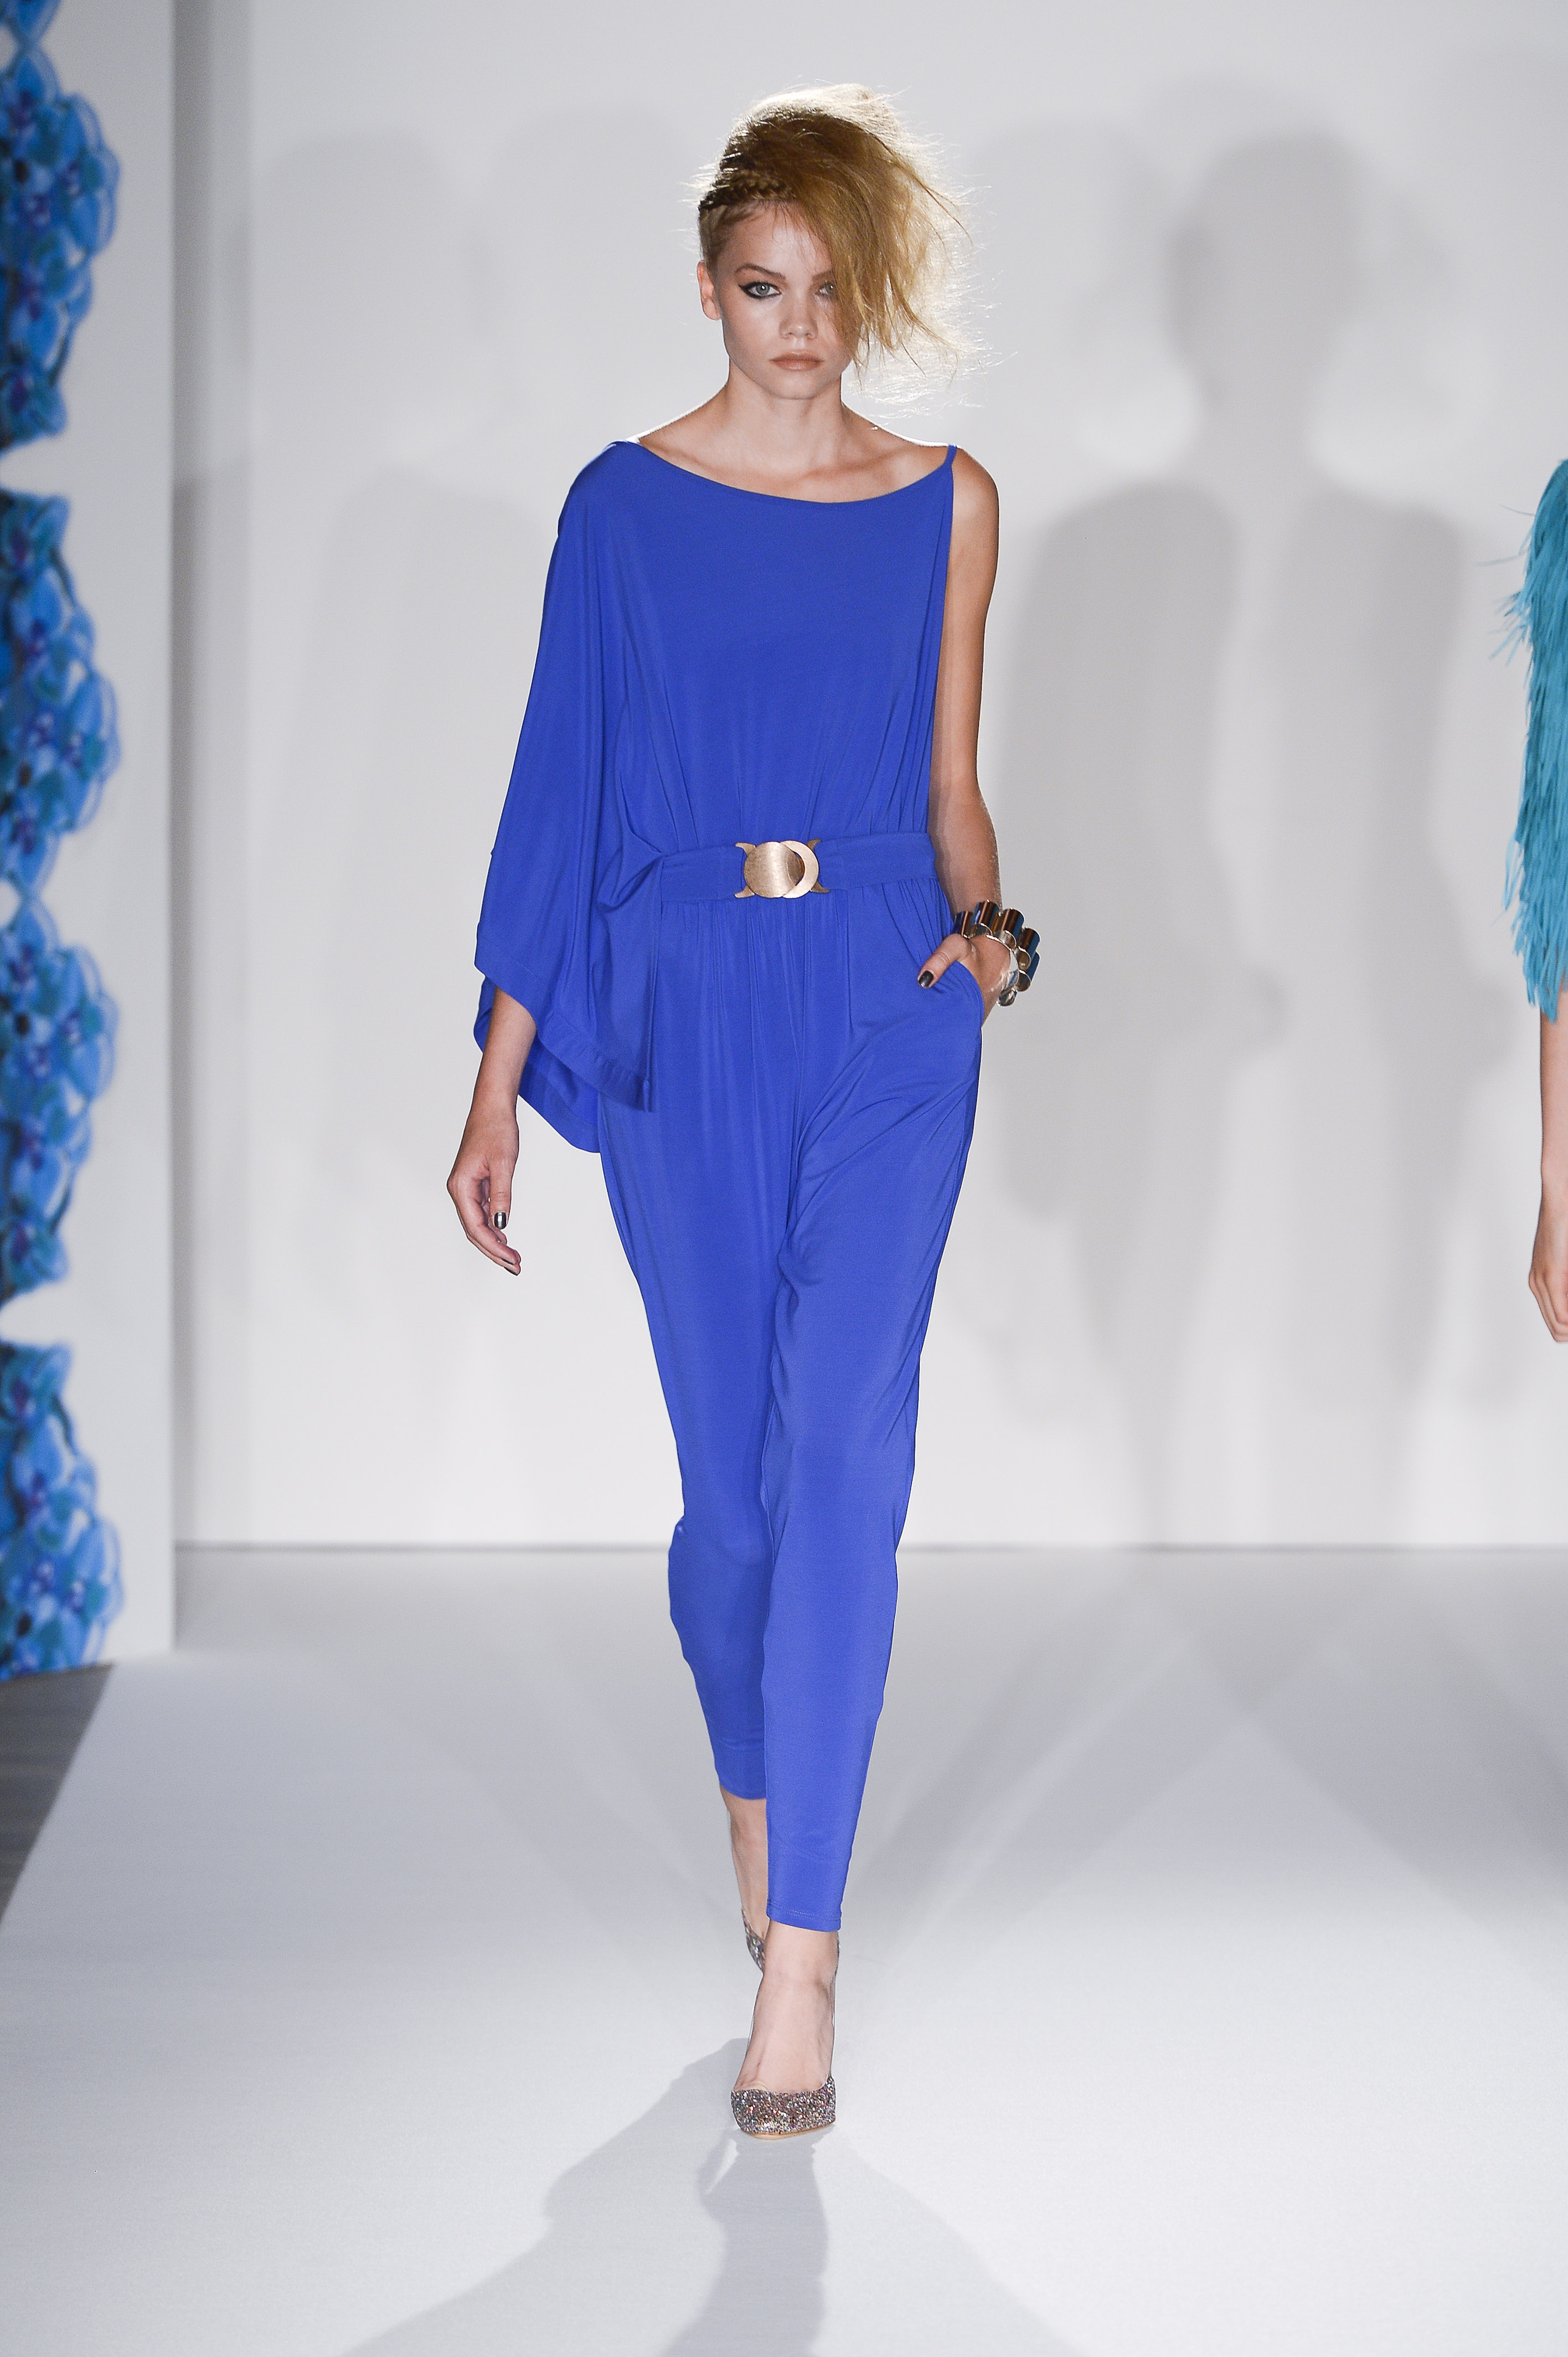 Pixelformula Paola Frani Womenswear Summer 2013 Ready To Wear Milano